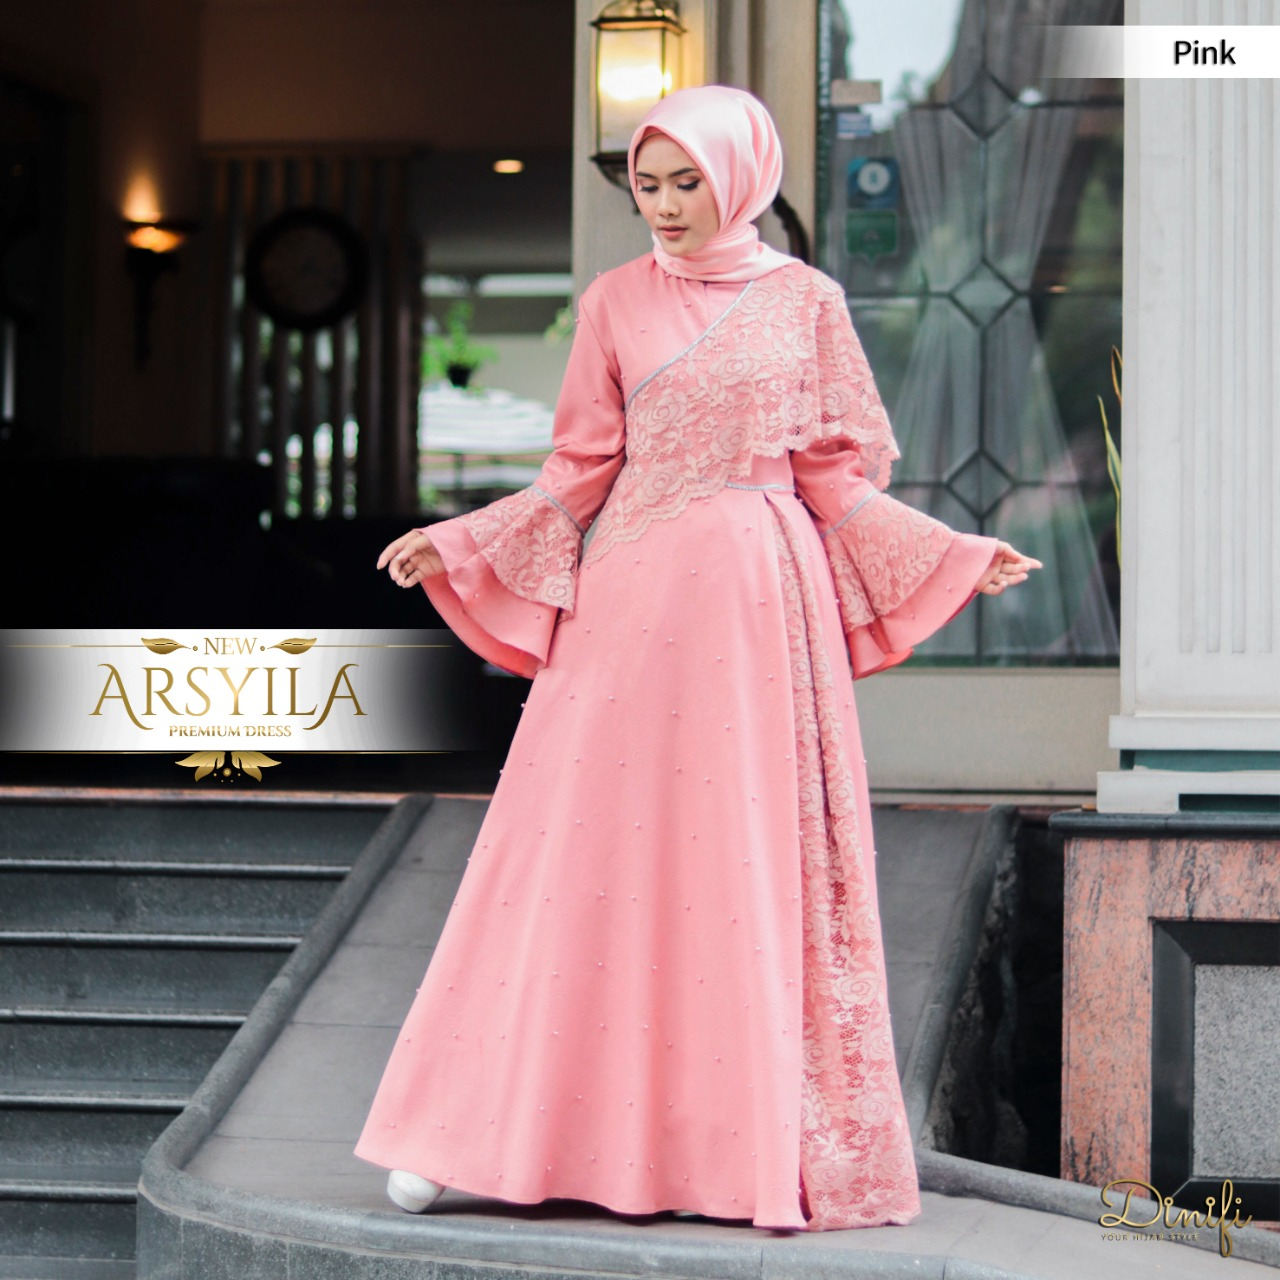 Free Stock New Arsyila Dress